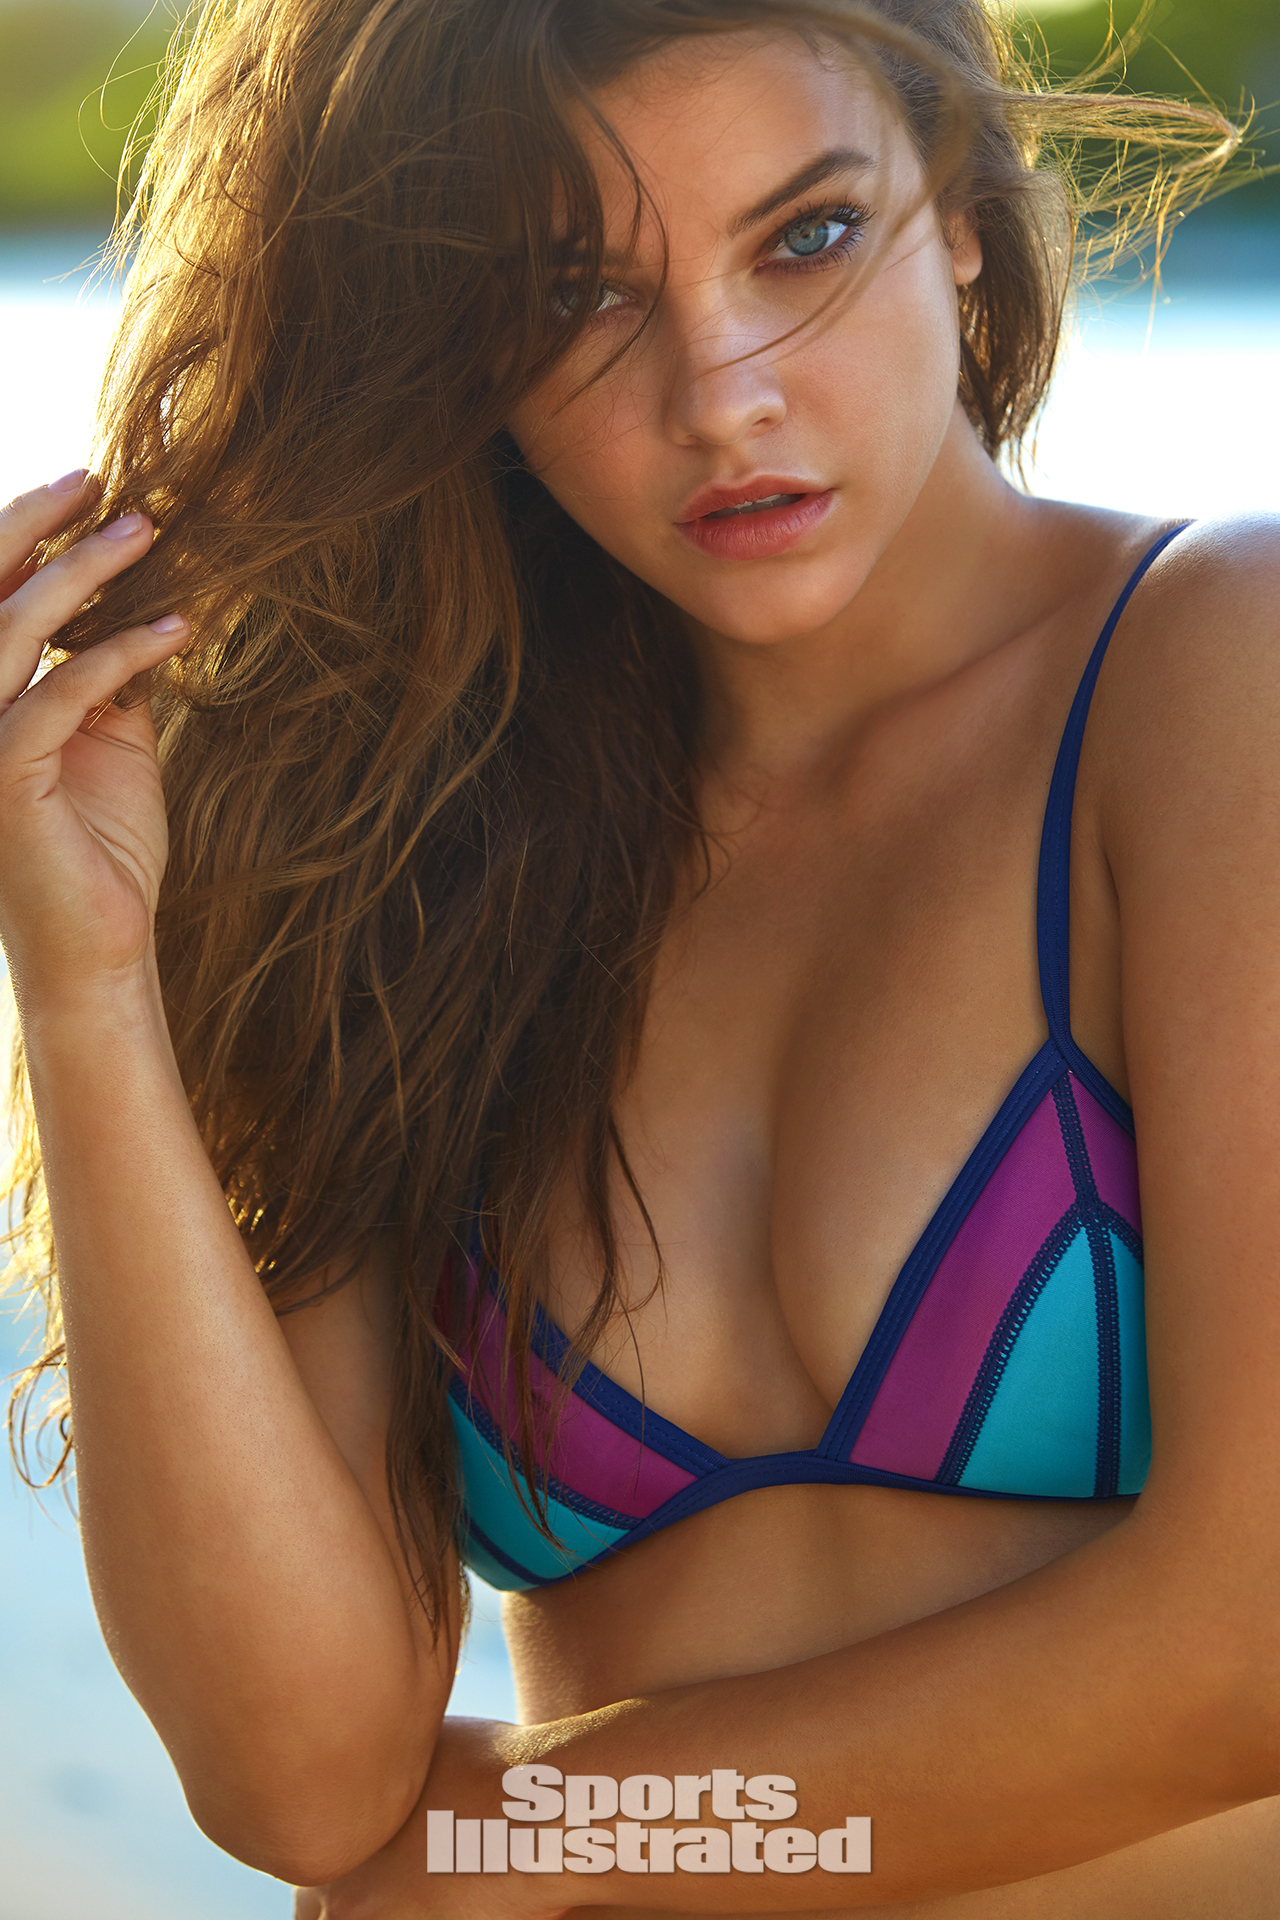 Barbara Palvin was photographed by James Macari in Turks & Caicos. Swimsuit by Duskii.